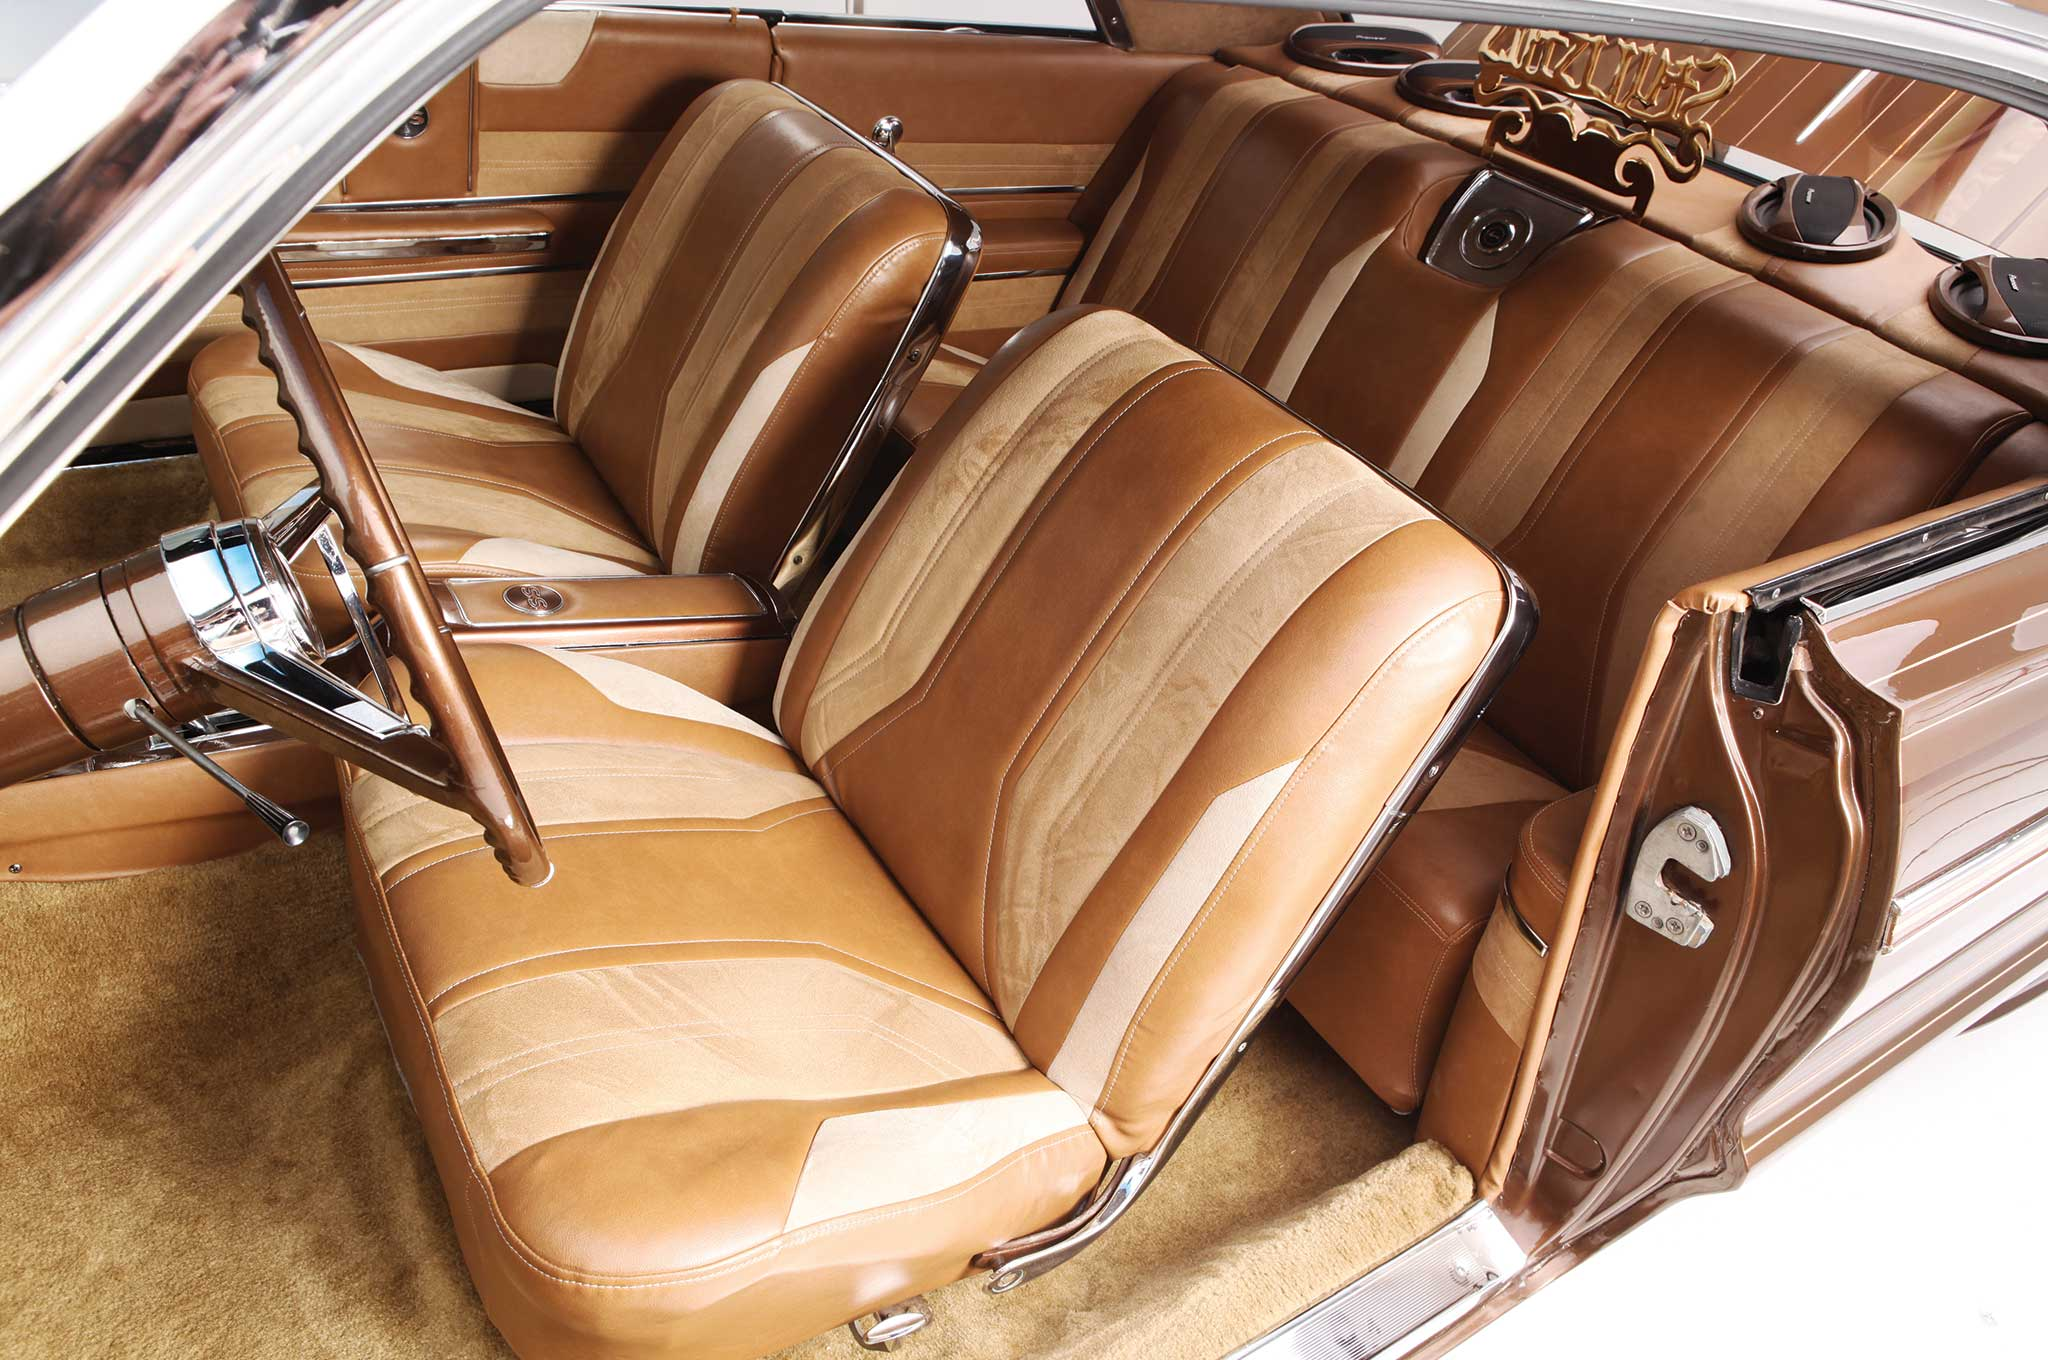 1964 Chevrolet Impala Brown Eyed Girl Lowrider Chevy Truck Paint Colors 5 31